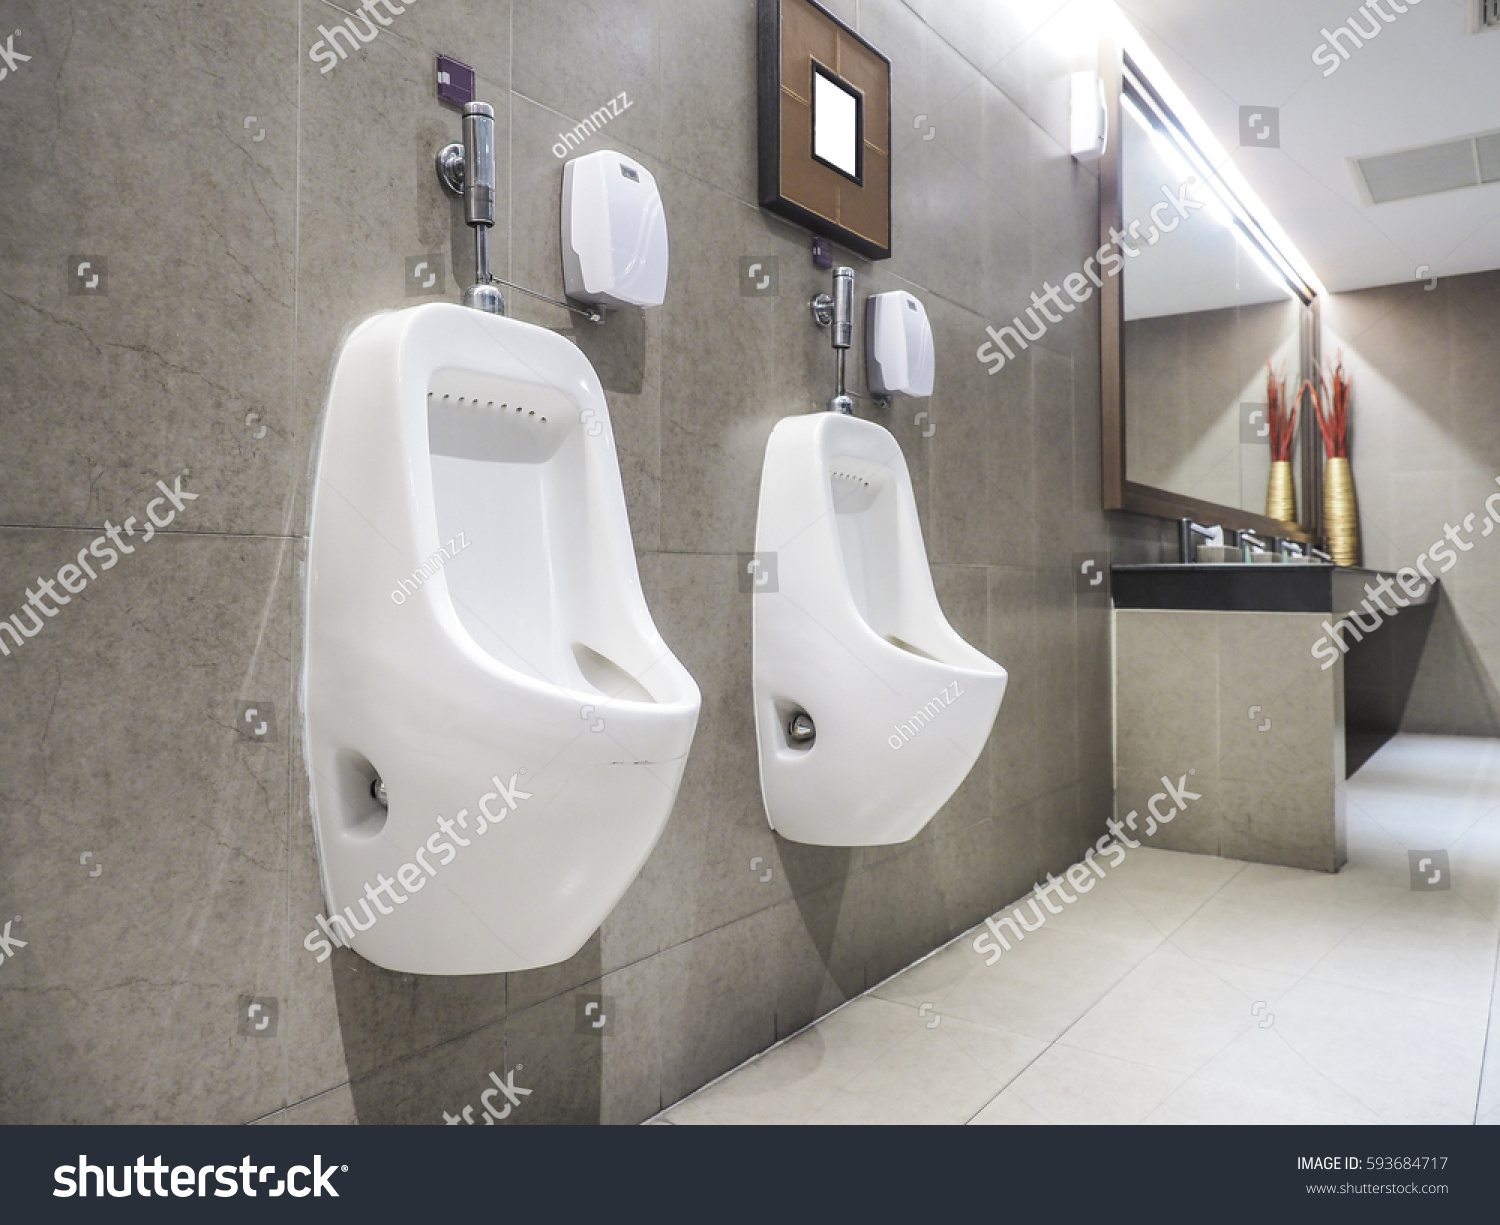 Row Outdoor Urinals Men Public Toilet Closeup Stock Photo (Edit Now ...